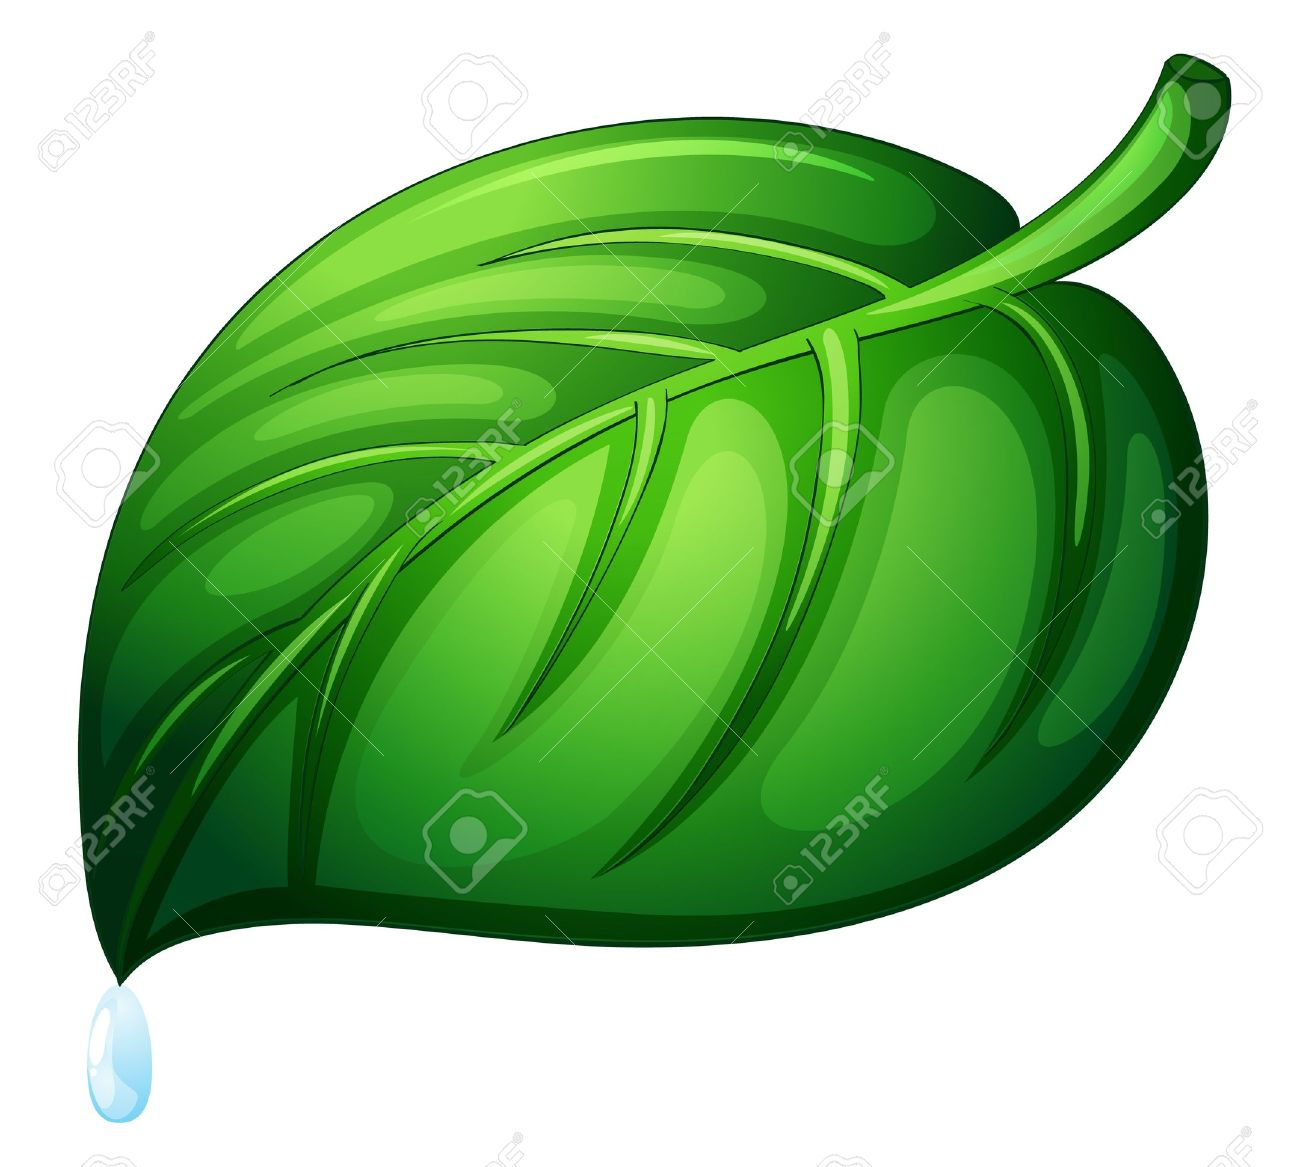 Illustration Of A Leaf On White Royalty Free Cliparts, Vectors.